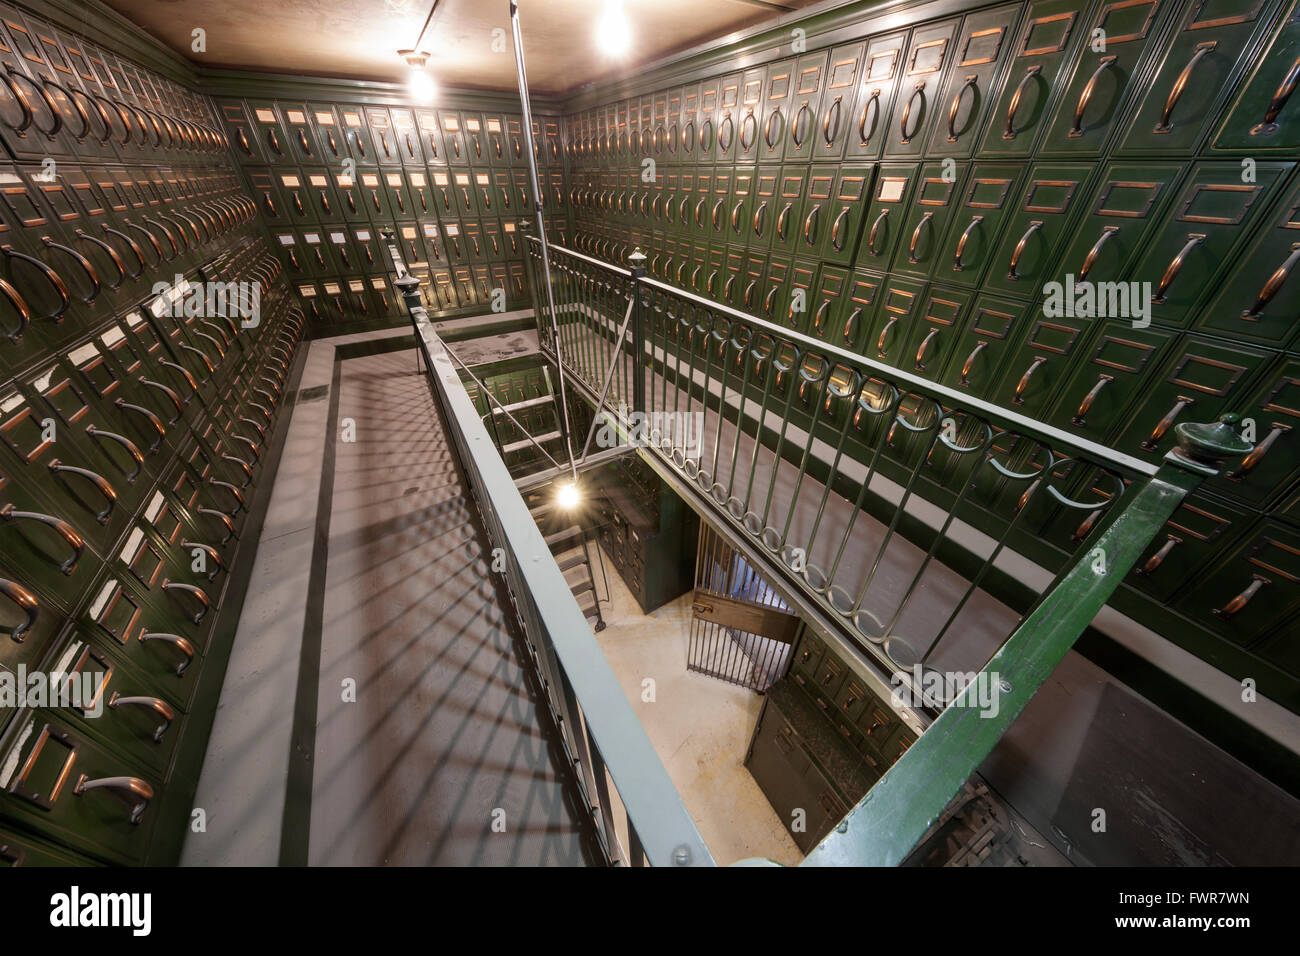 Inside and old Bank Vault. - Stock Image